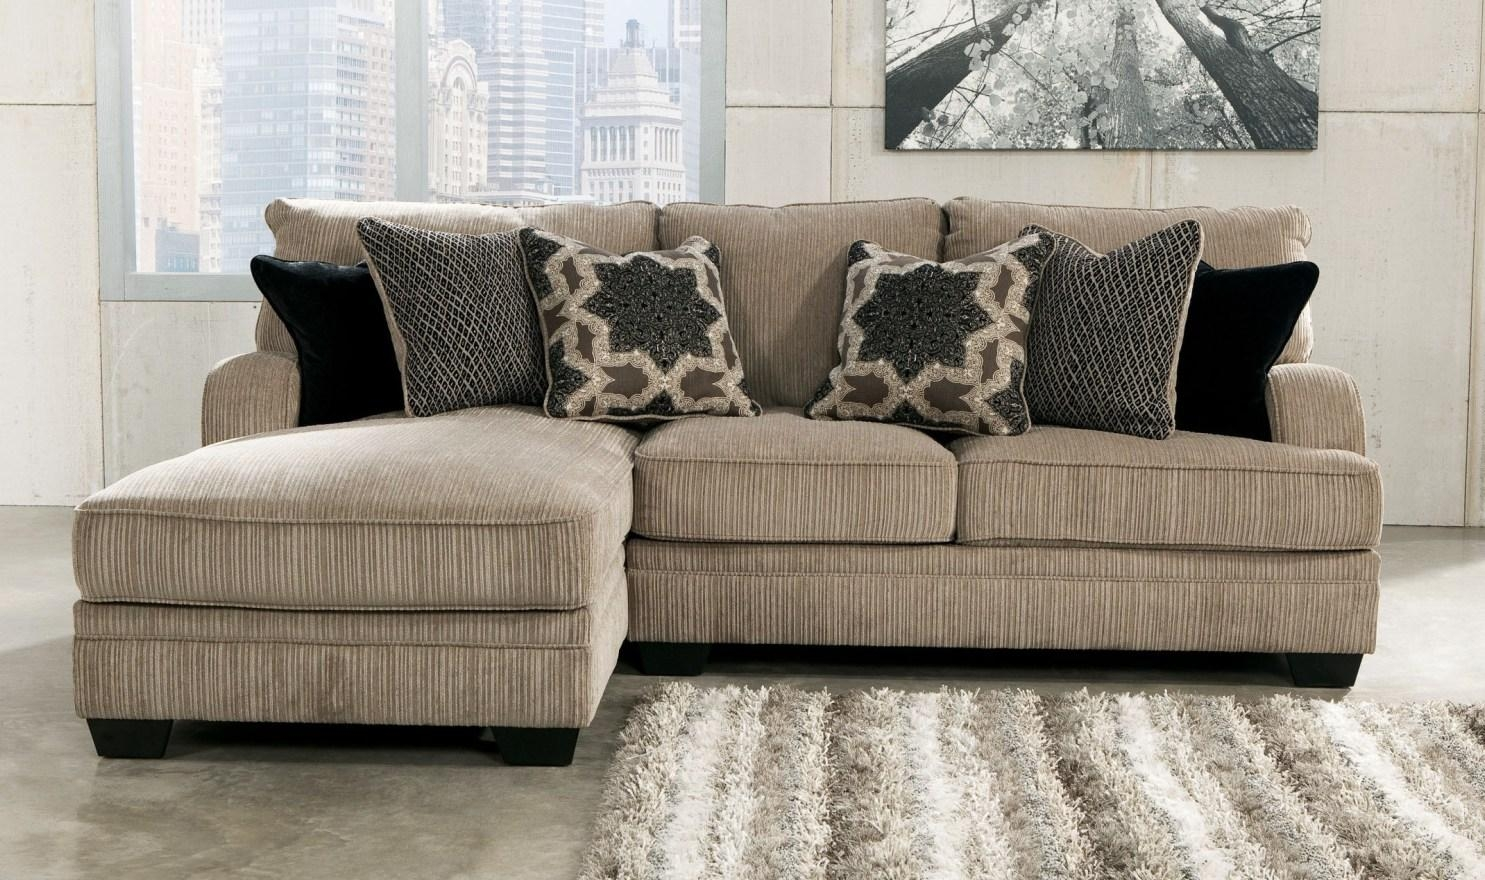 Charming Leather Sectional For Small Spaces Tags : Sectional Couch Inside Sectional Small Space (Image 4 of 20)